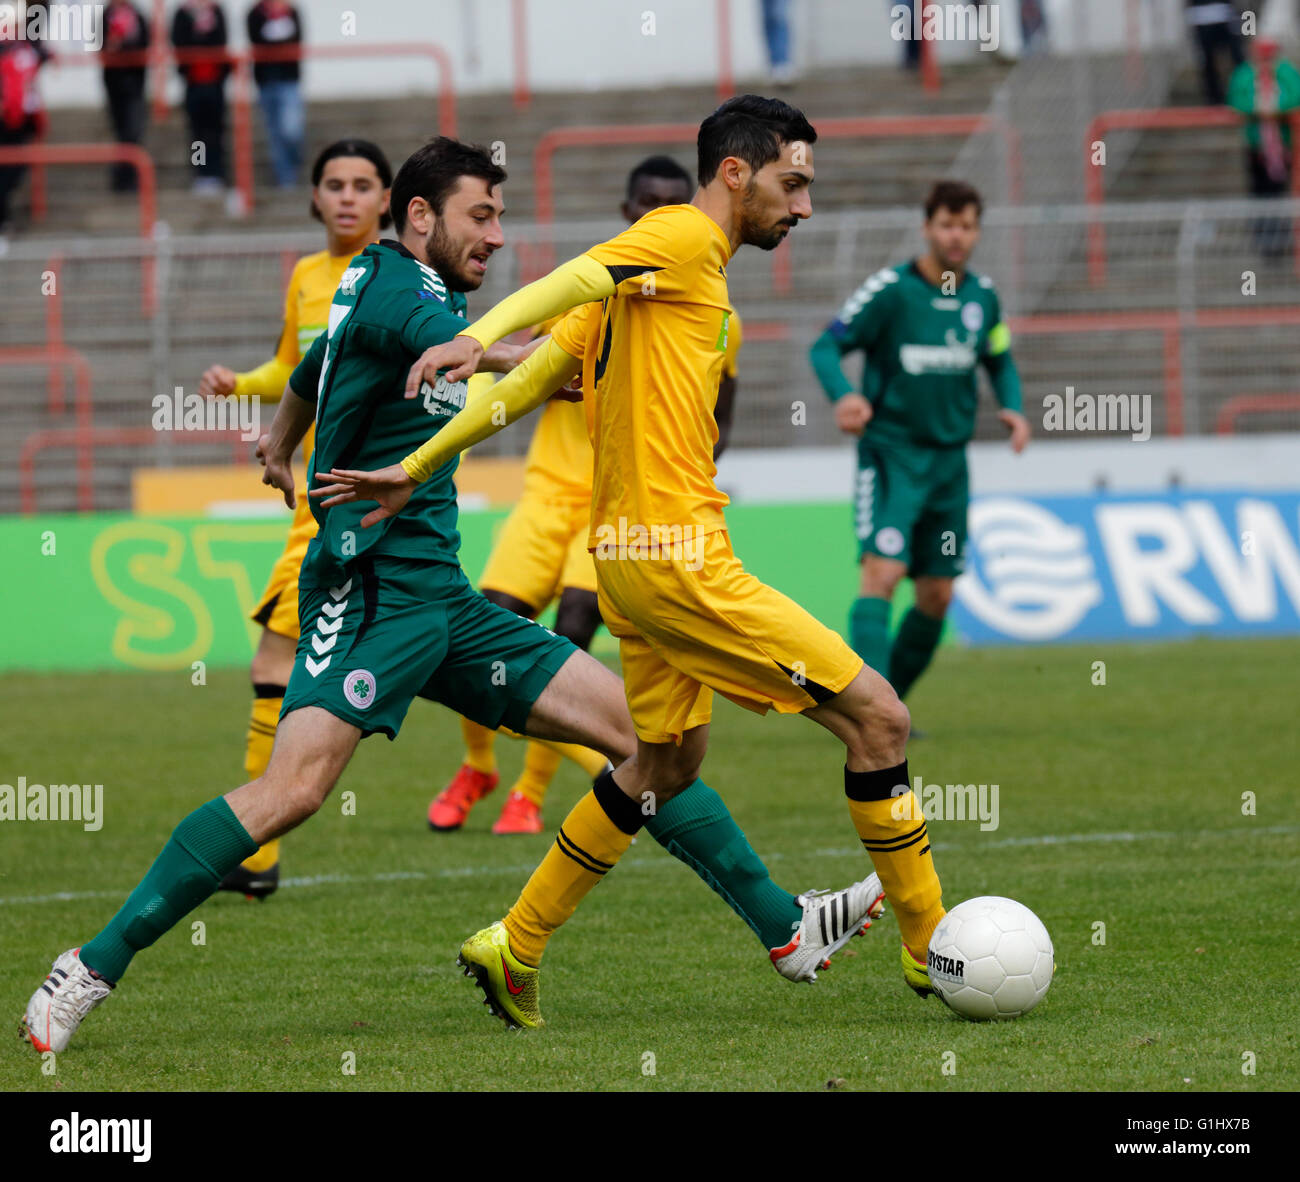 sports, football, Regional League West, 2015/2016, Rot Weiss Oberhausen versus Fortuna Duesseldorf U23 4:2, Stadium - Stock Image